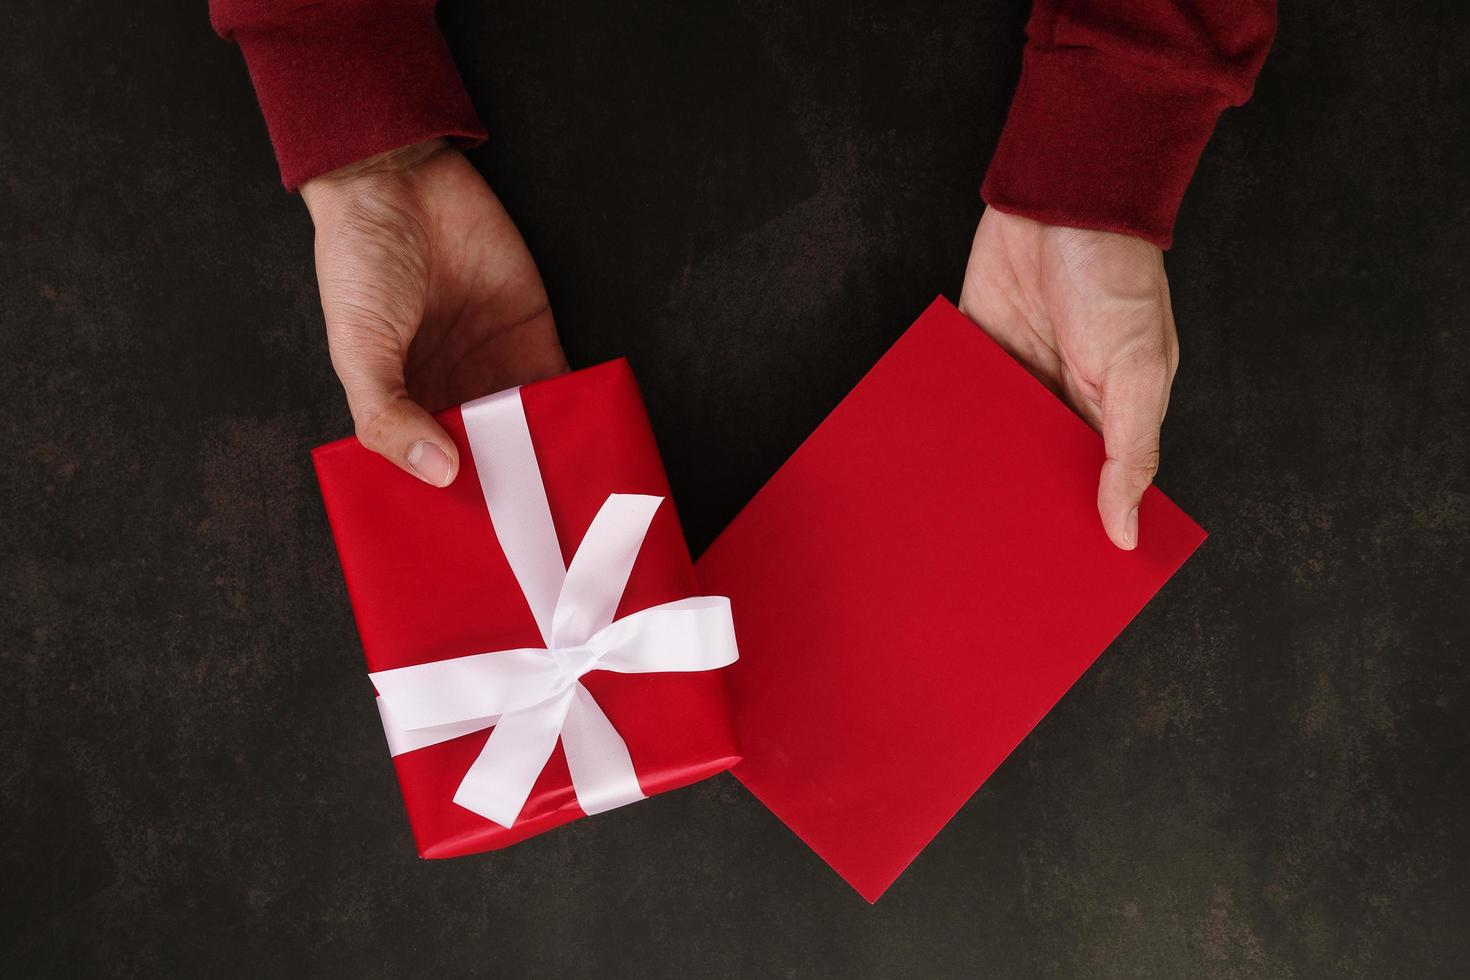 Hands holding red greeting card mockup photo